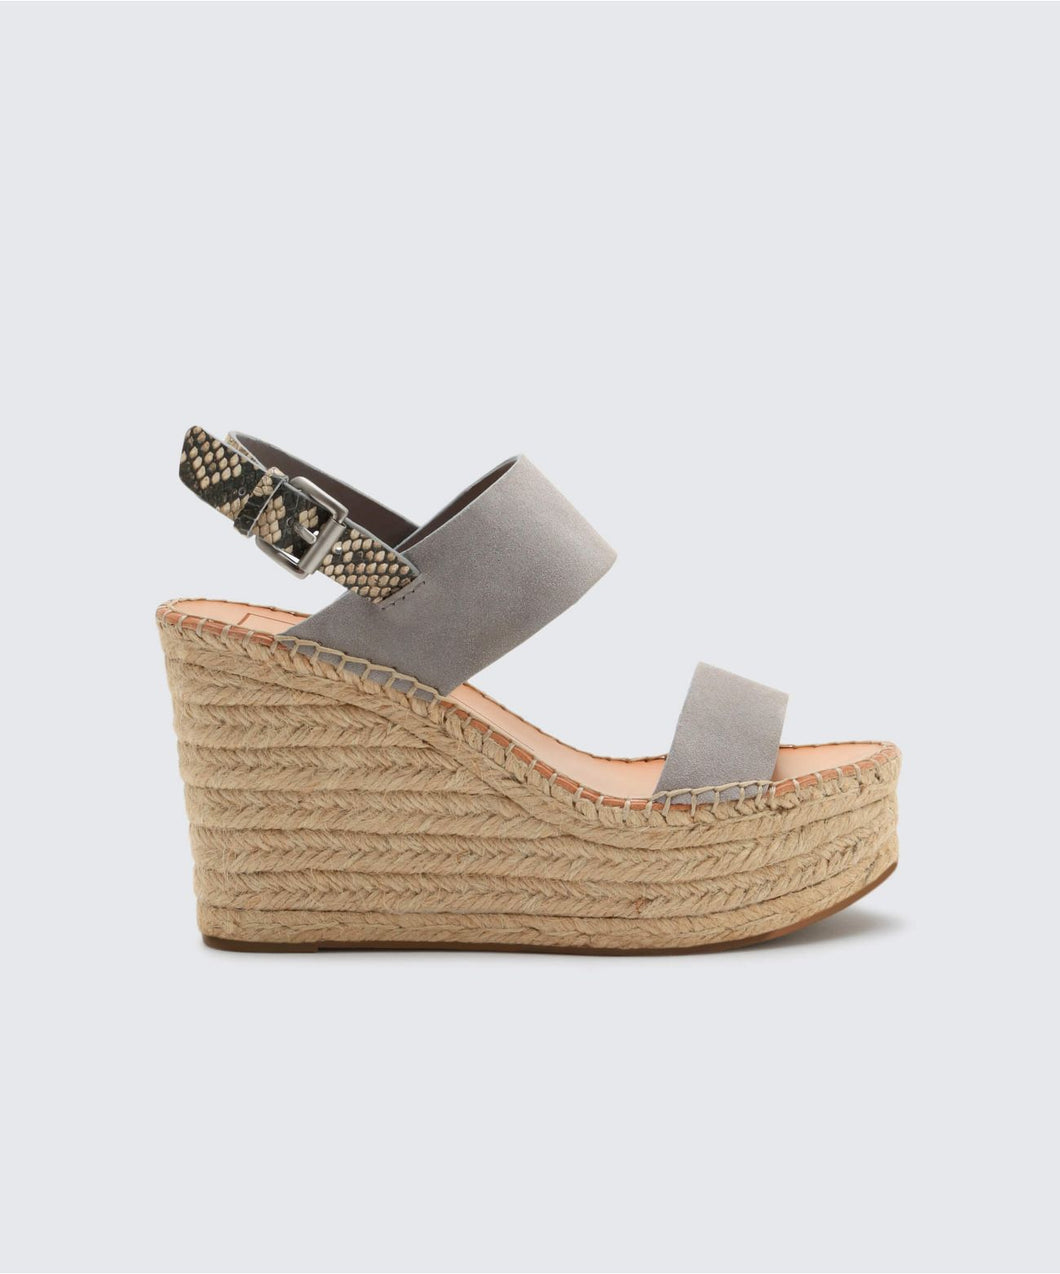 SPIRO WEDGES IN SMOKE -   Dolce Vita